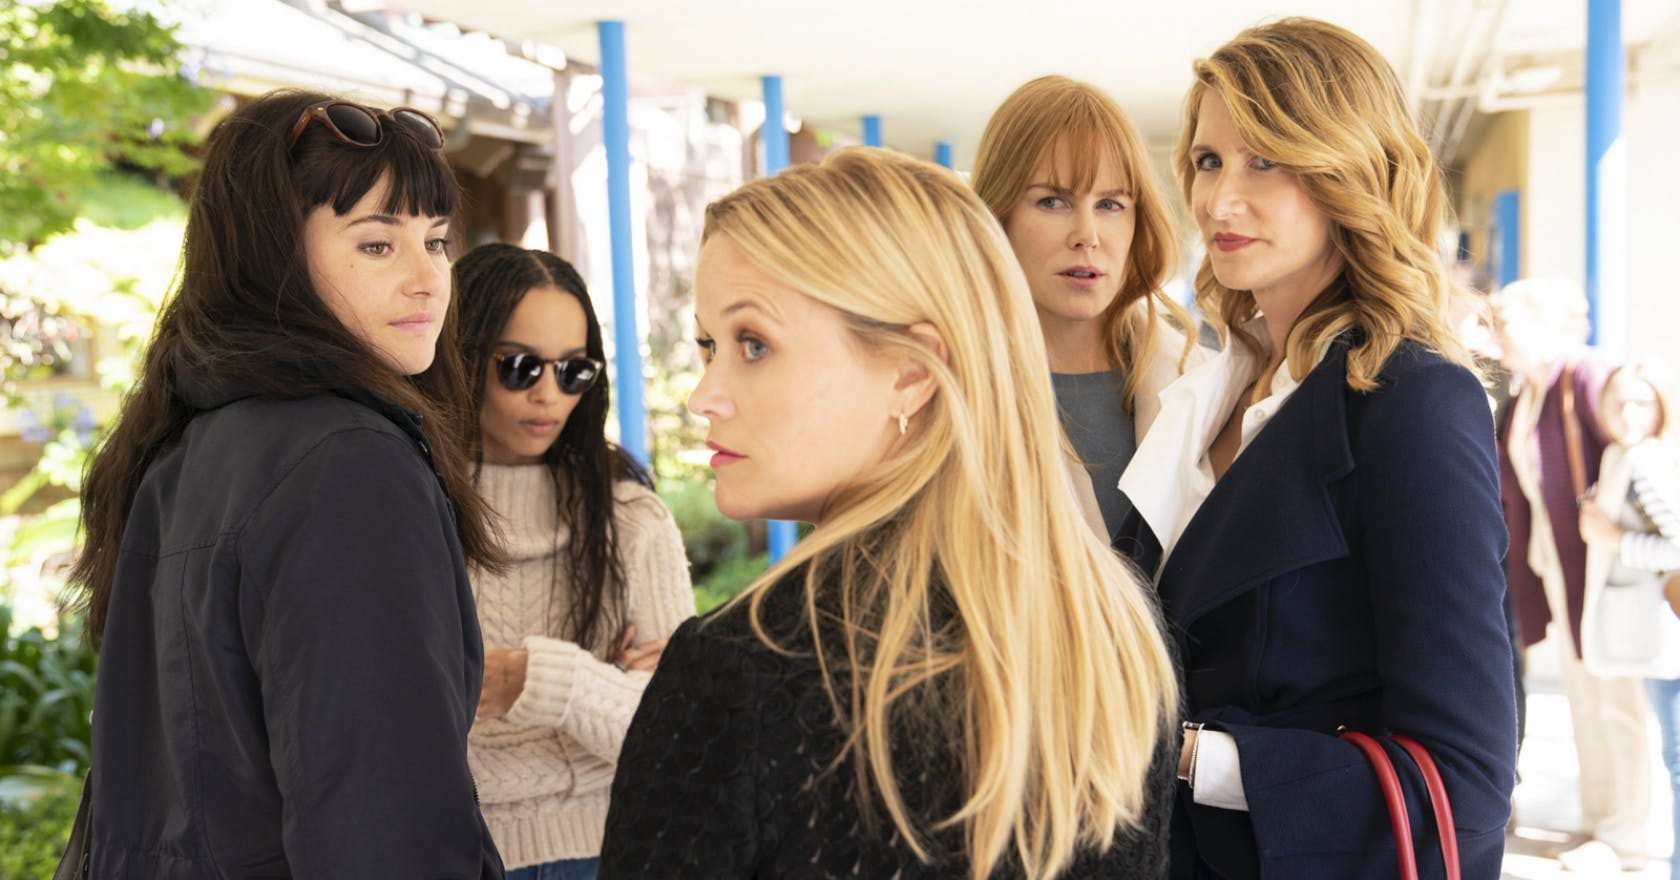 Netflix and the creator of Big Little Lies are working on a new adaptation of Anatomy of a Scandal